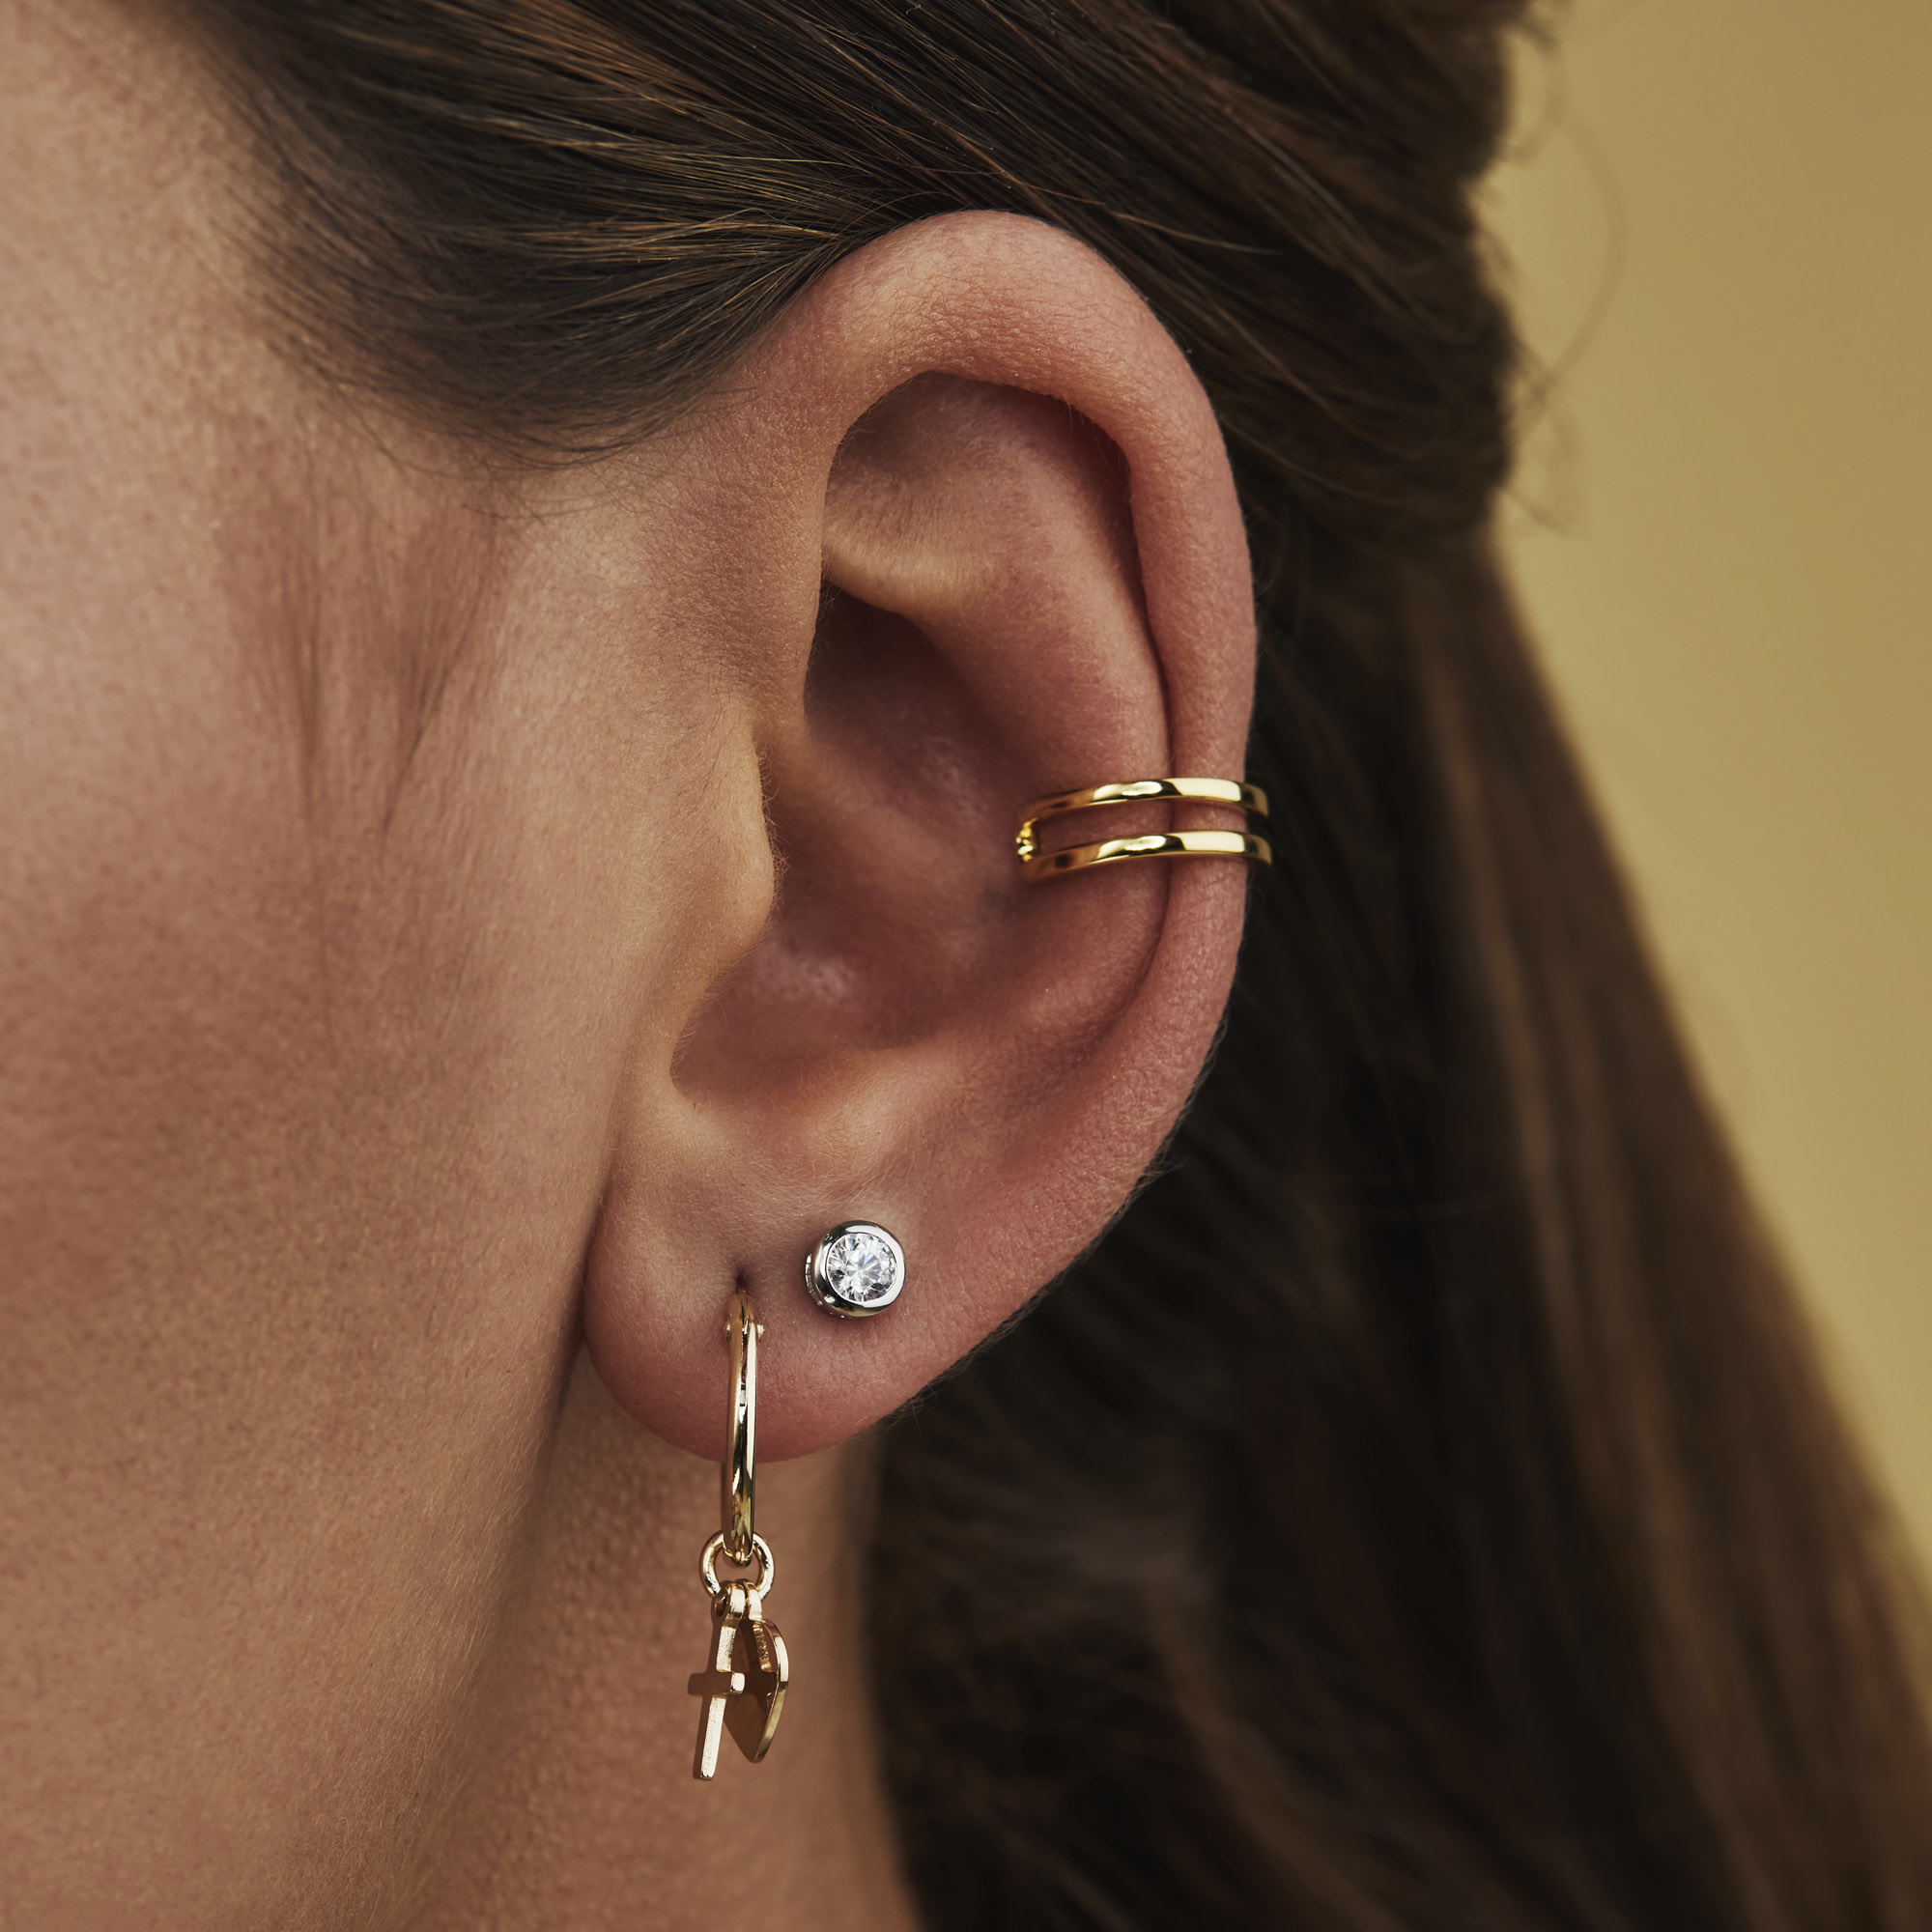 Selected Jewels Léna Joy ear cuff singolo color oro in argento sterling 925